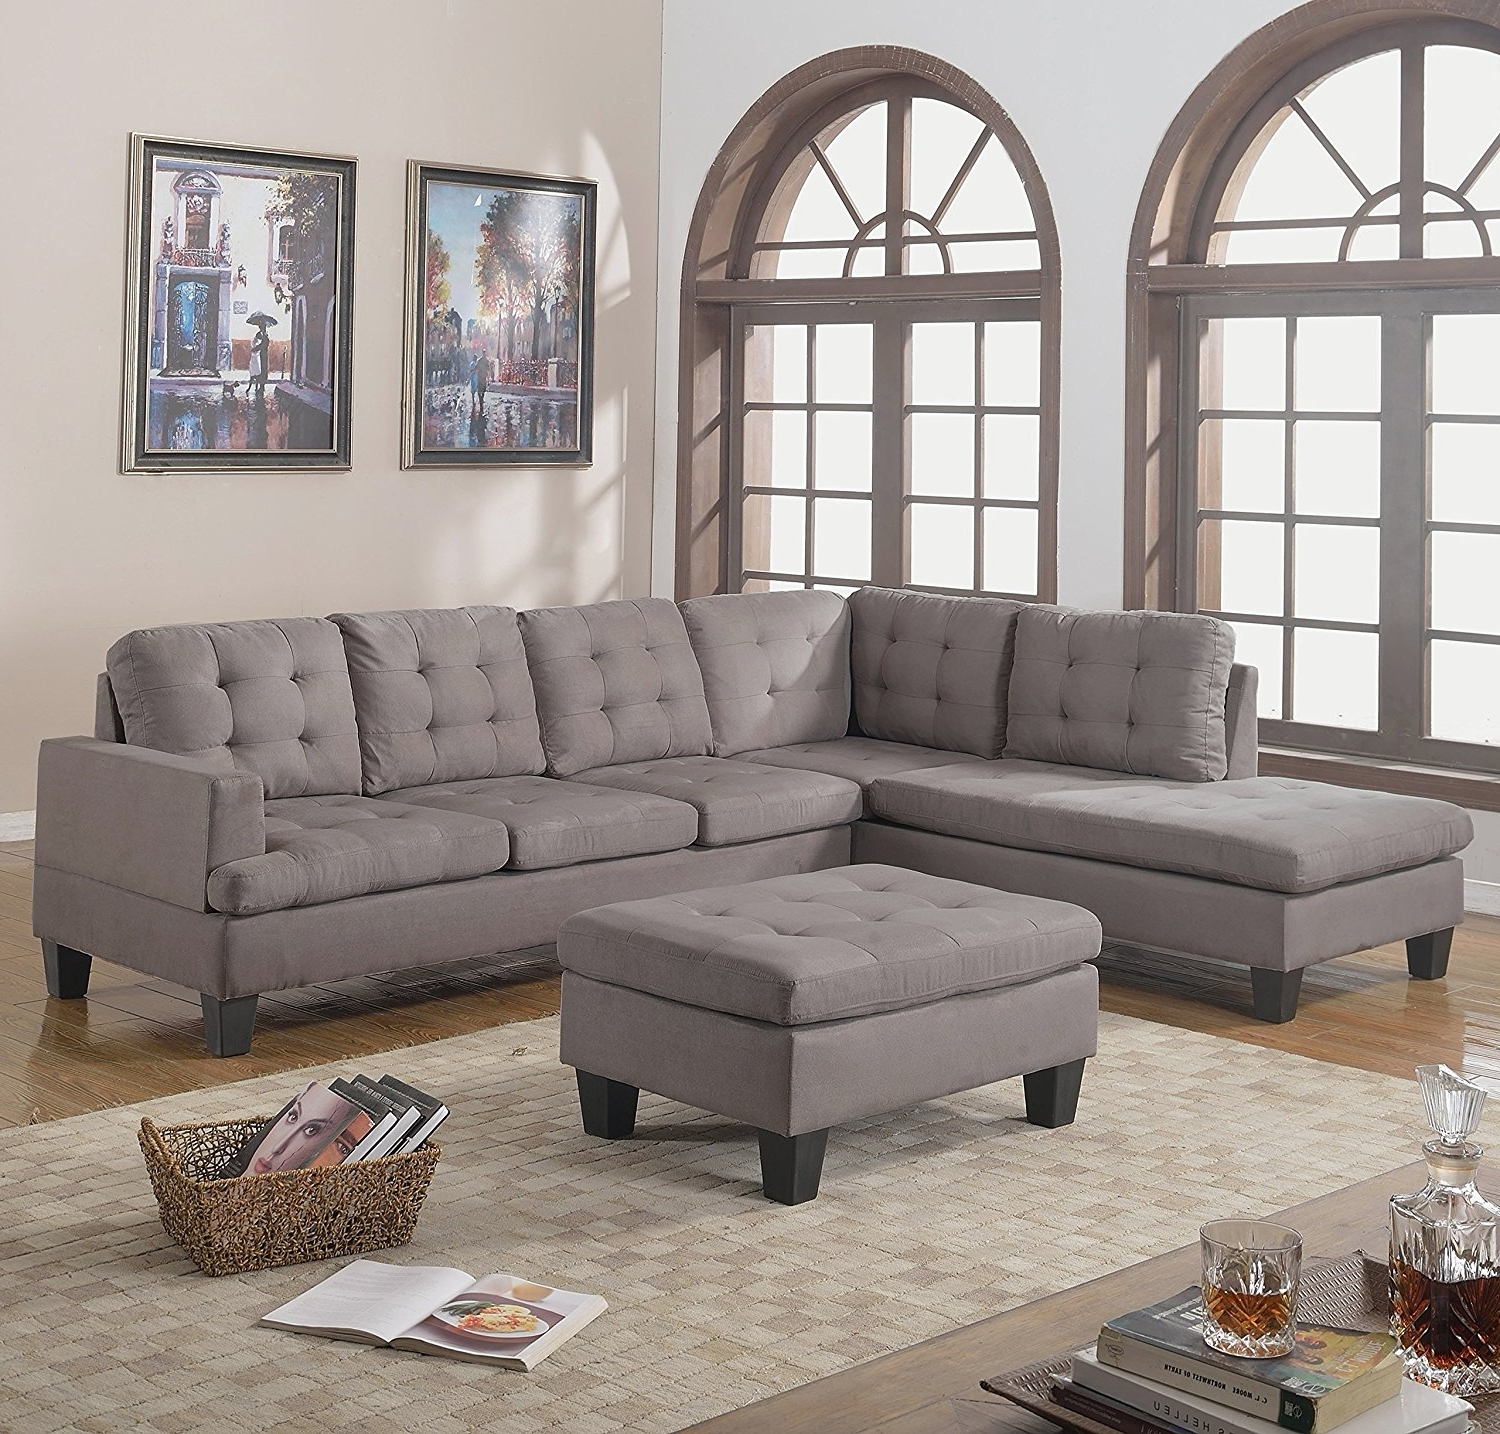 Furniture : American Furniture Warehouse 470 Living Room Furniture Intended For Famous St Cloud Mn Sectional Sofas (View 8 of 20)